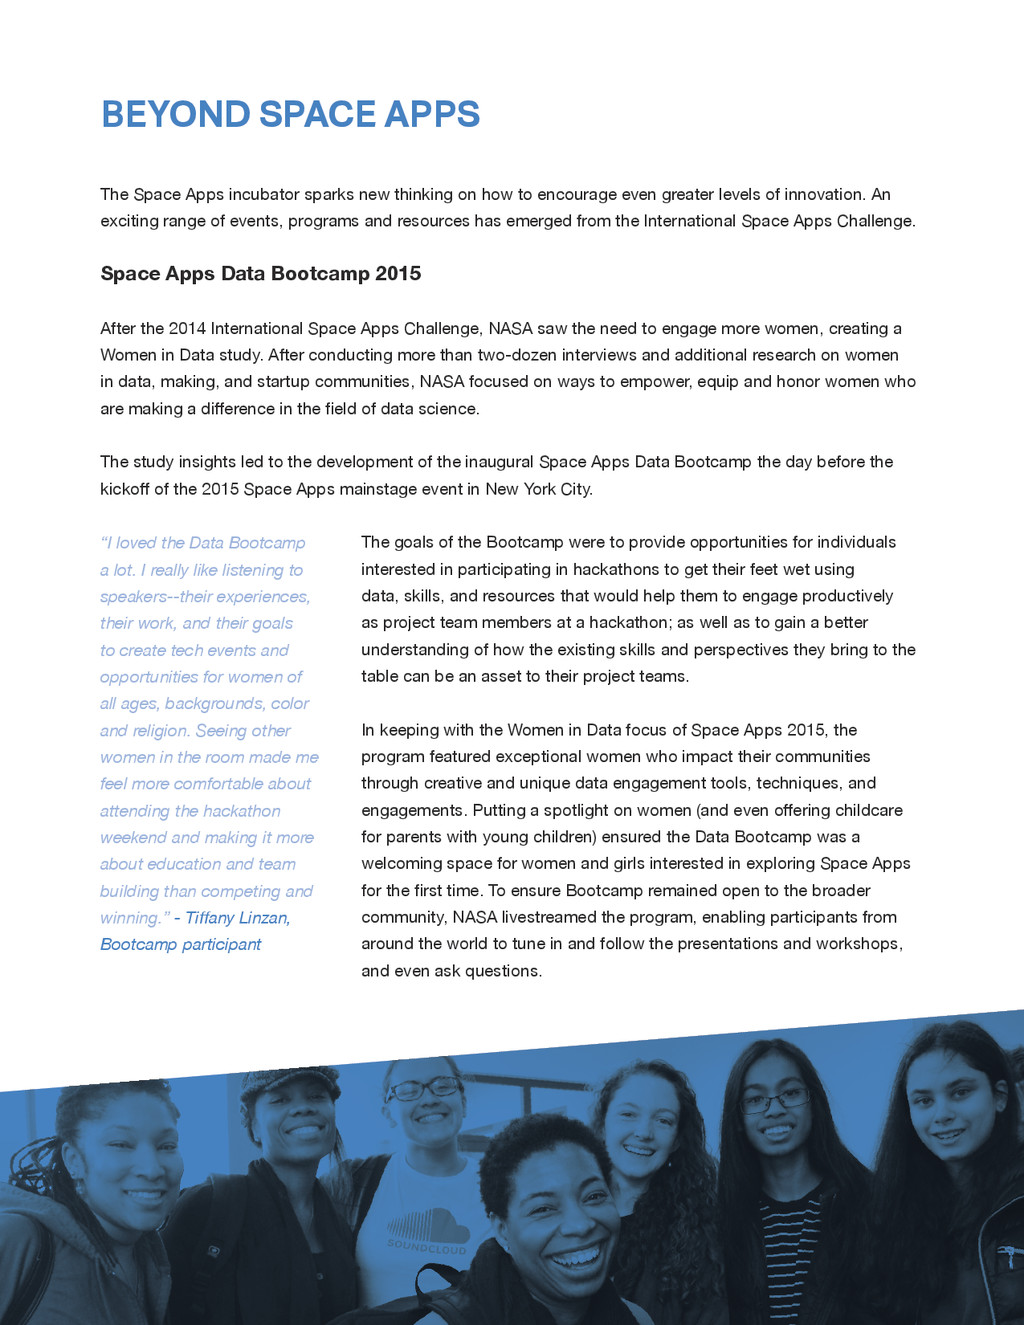 SPACE APPS 2015 MISSION REPORT 14 The Space App...